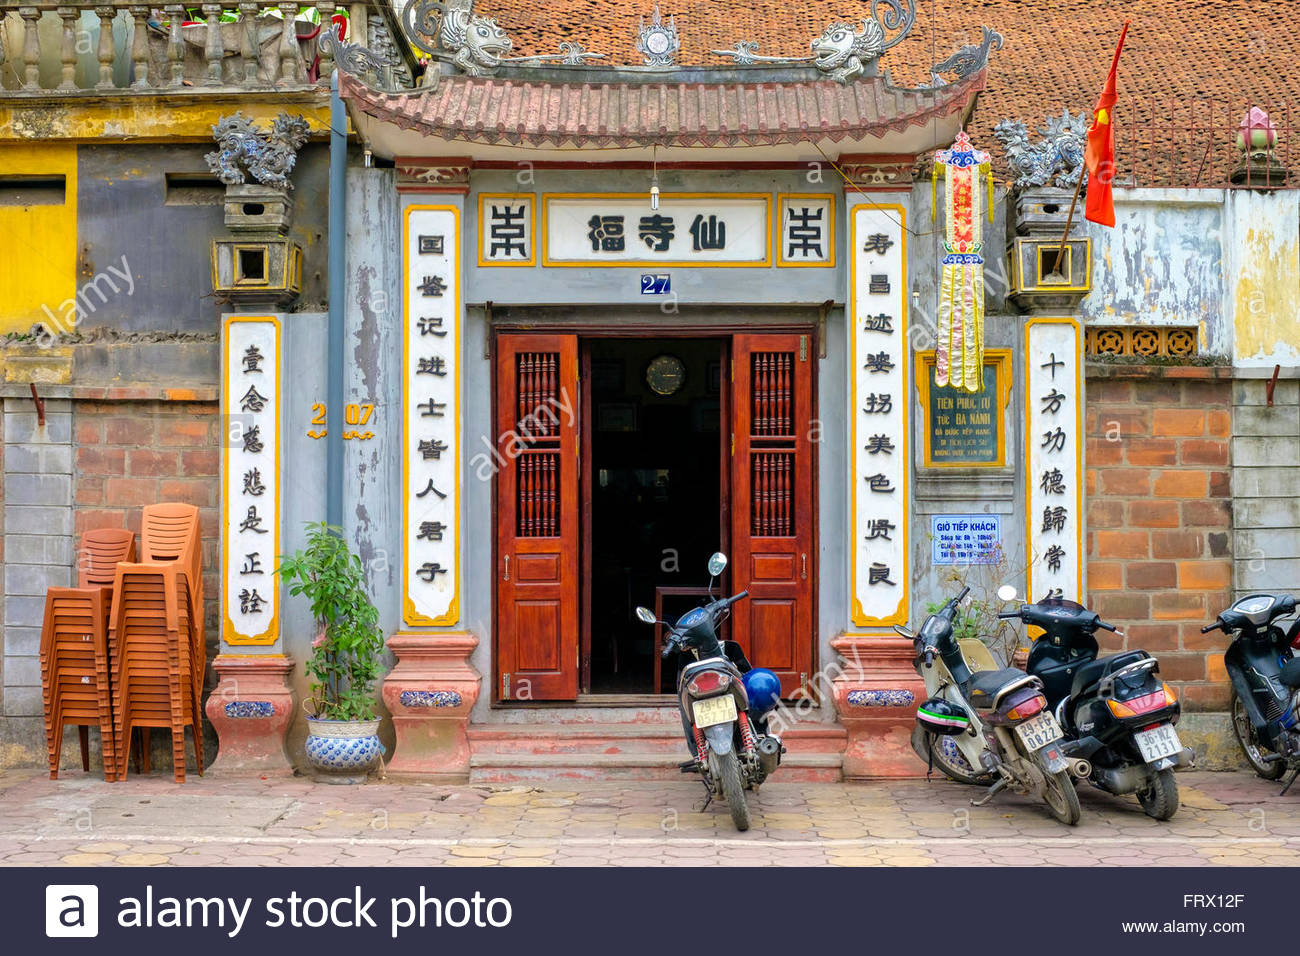 Motorbikes parked outside of small temple, Dong Da District, Hanoi, Vietnam - Stock Image